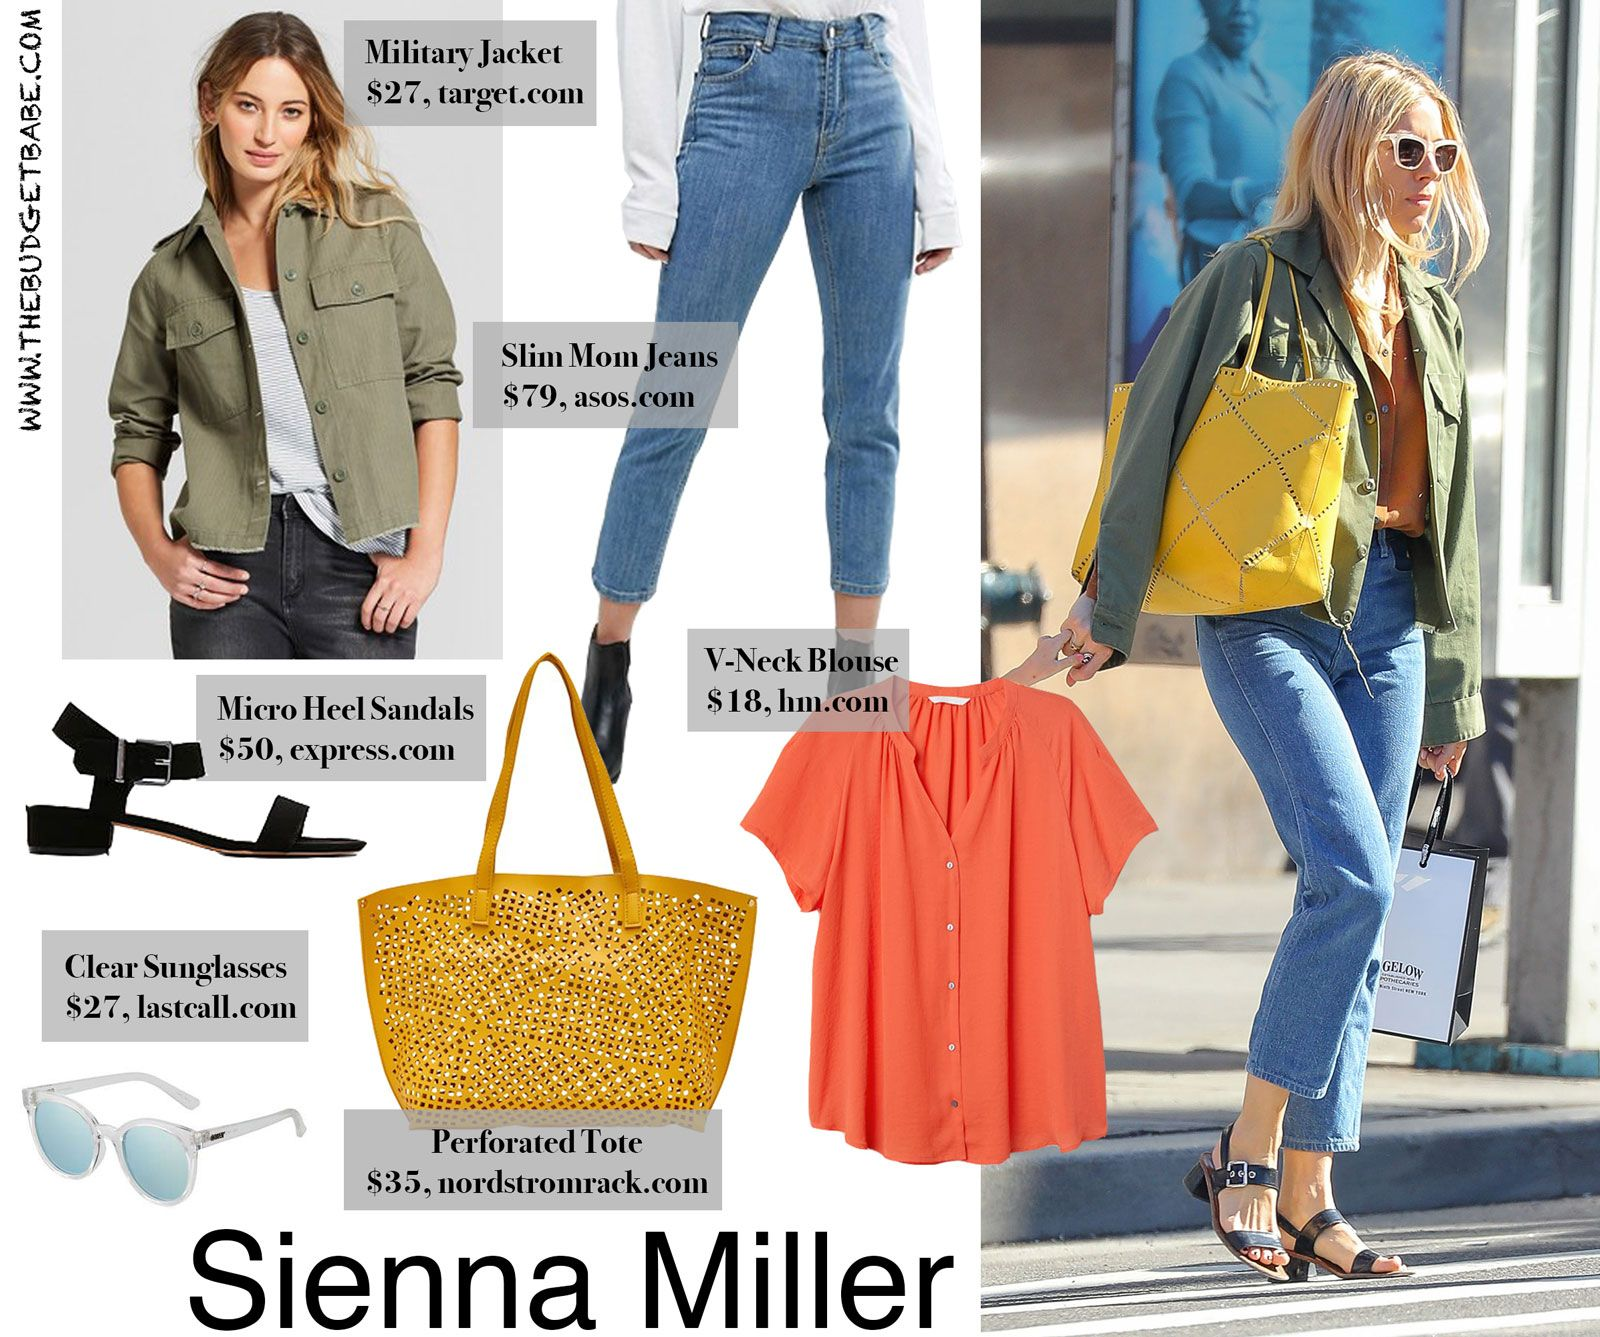 719f23096bb6b Sienna Miller's Army Jacket and Yellow Tote Look for Less - The Budget Babe  | Affordable Fashion & Style Blog